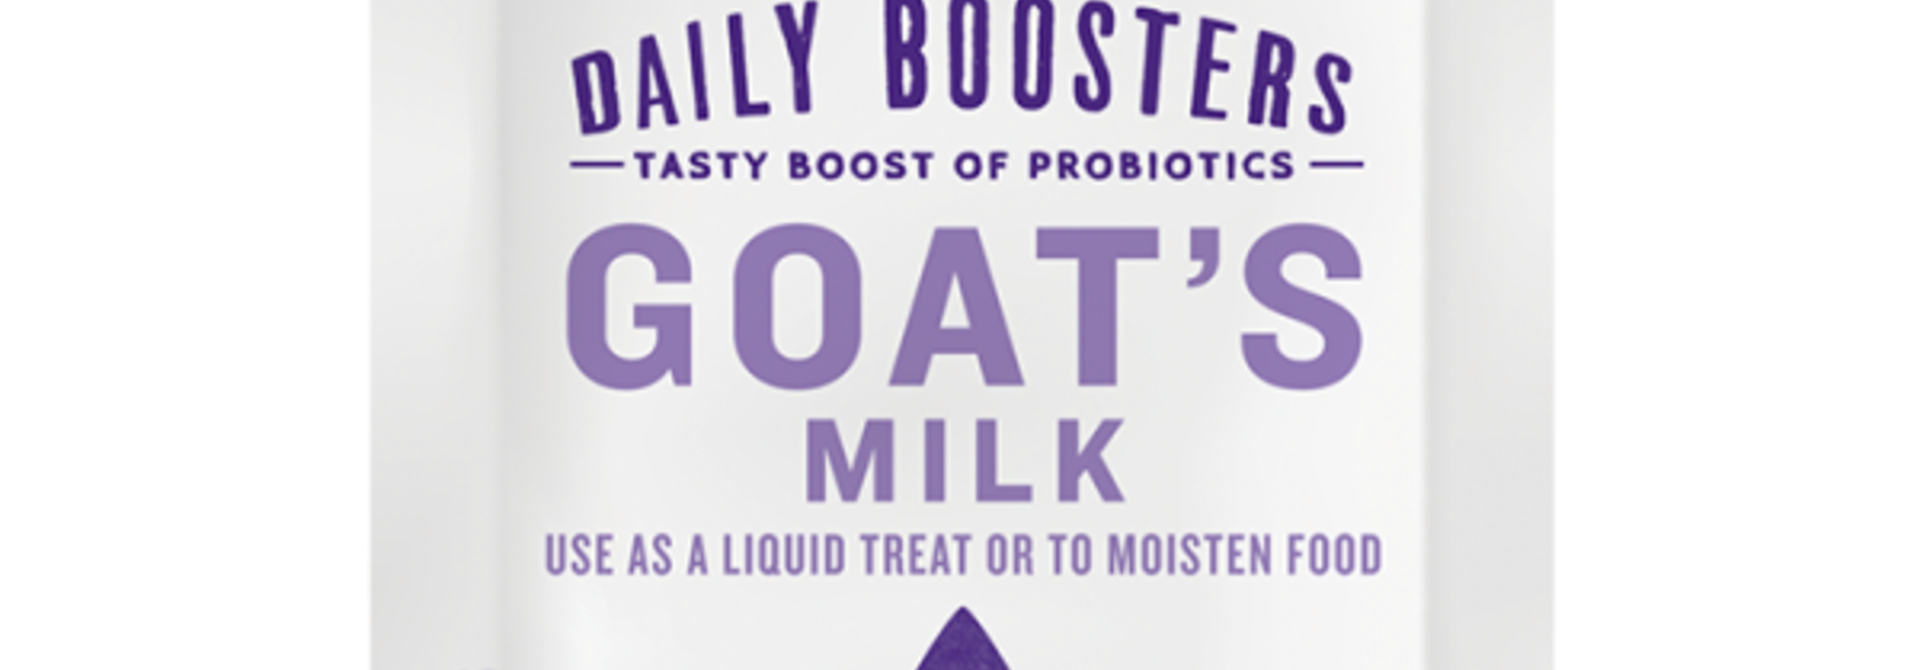 Daily Boosters Goat's Milk Single Serve Pack 12/5 g